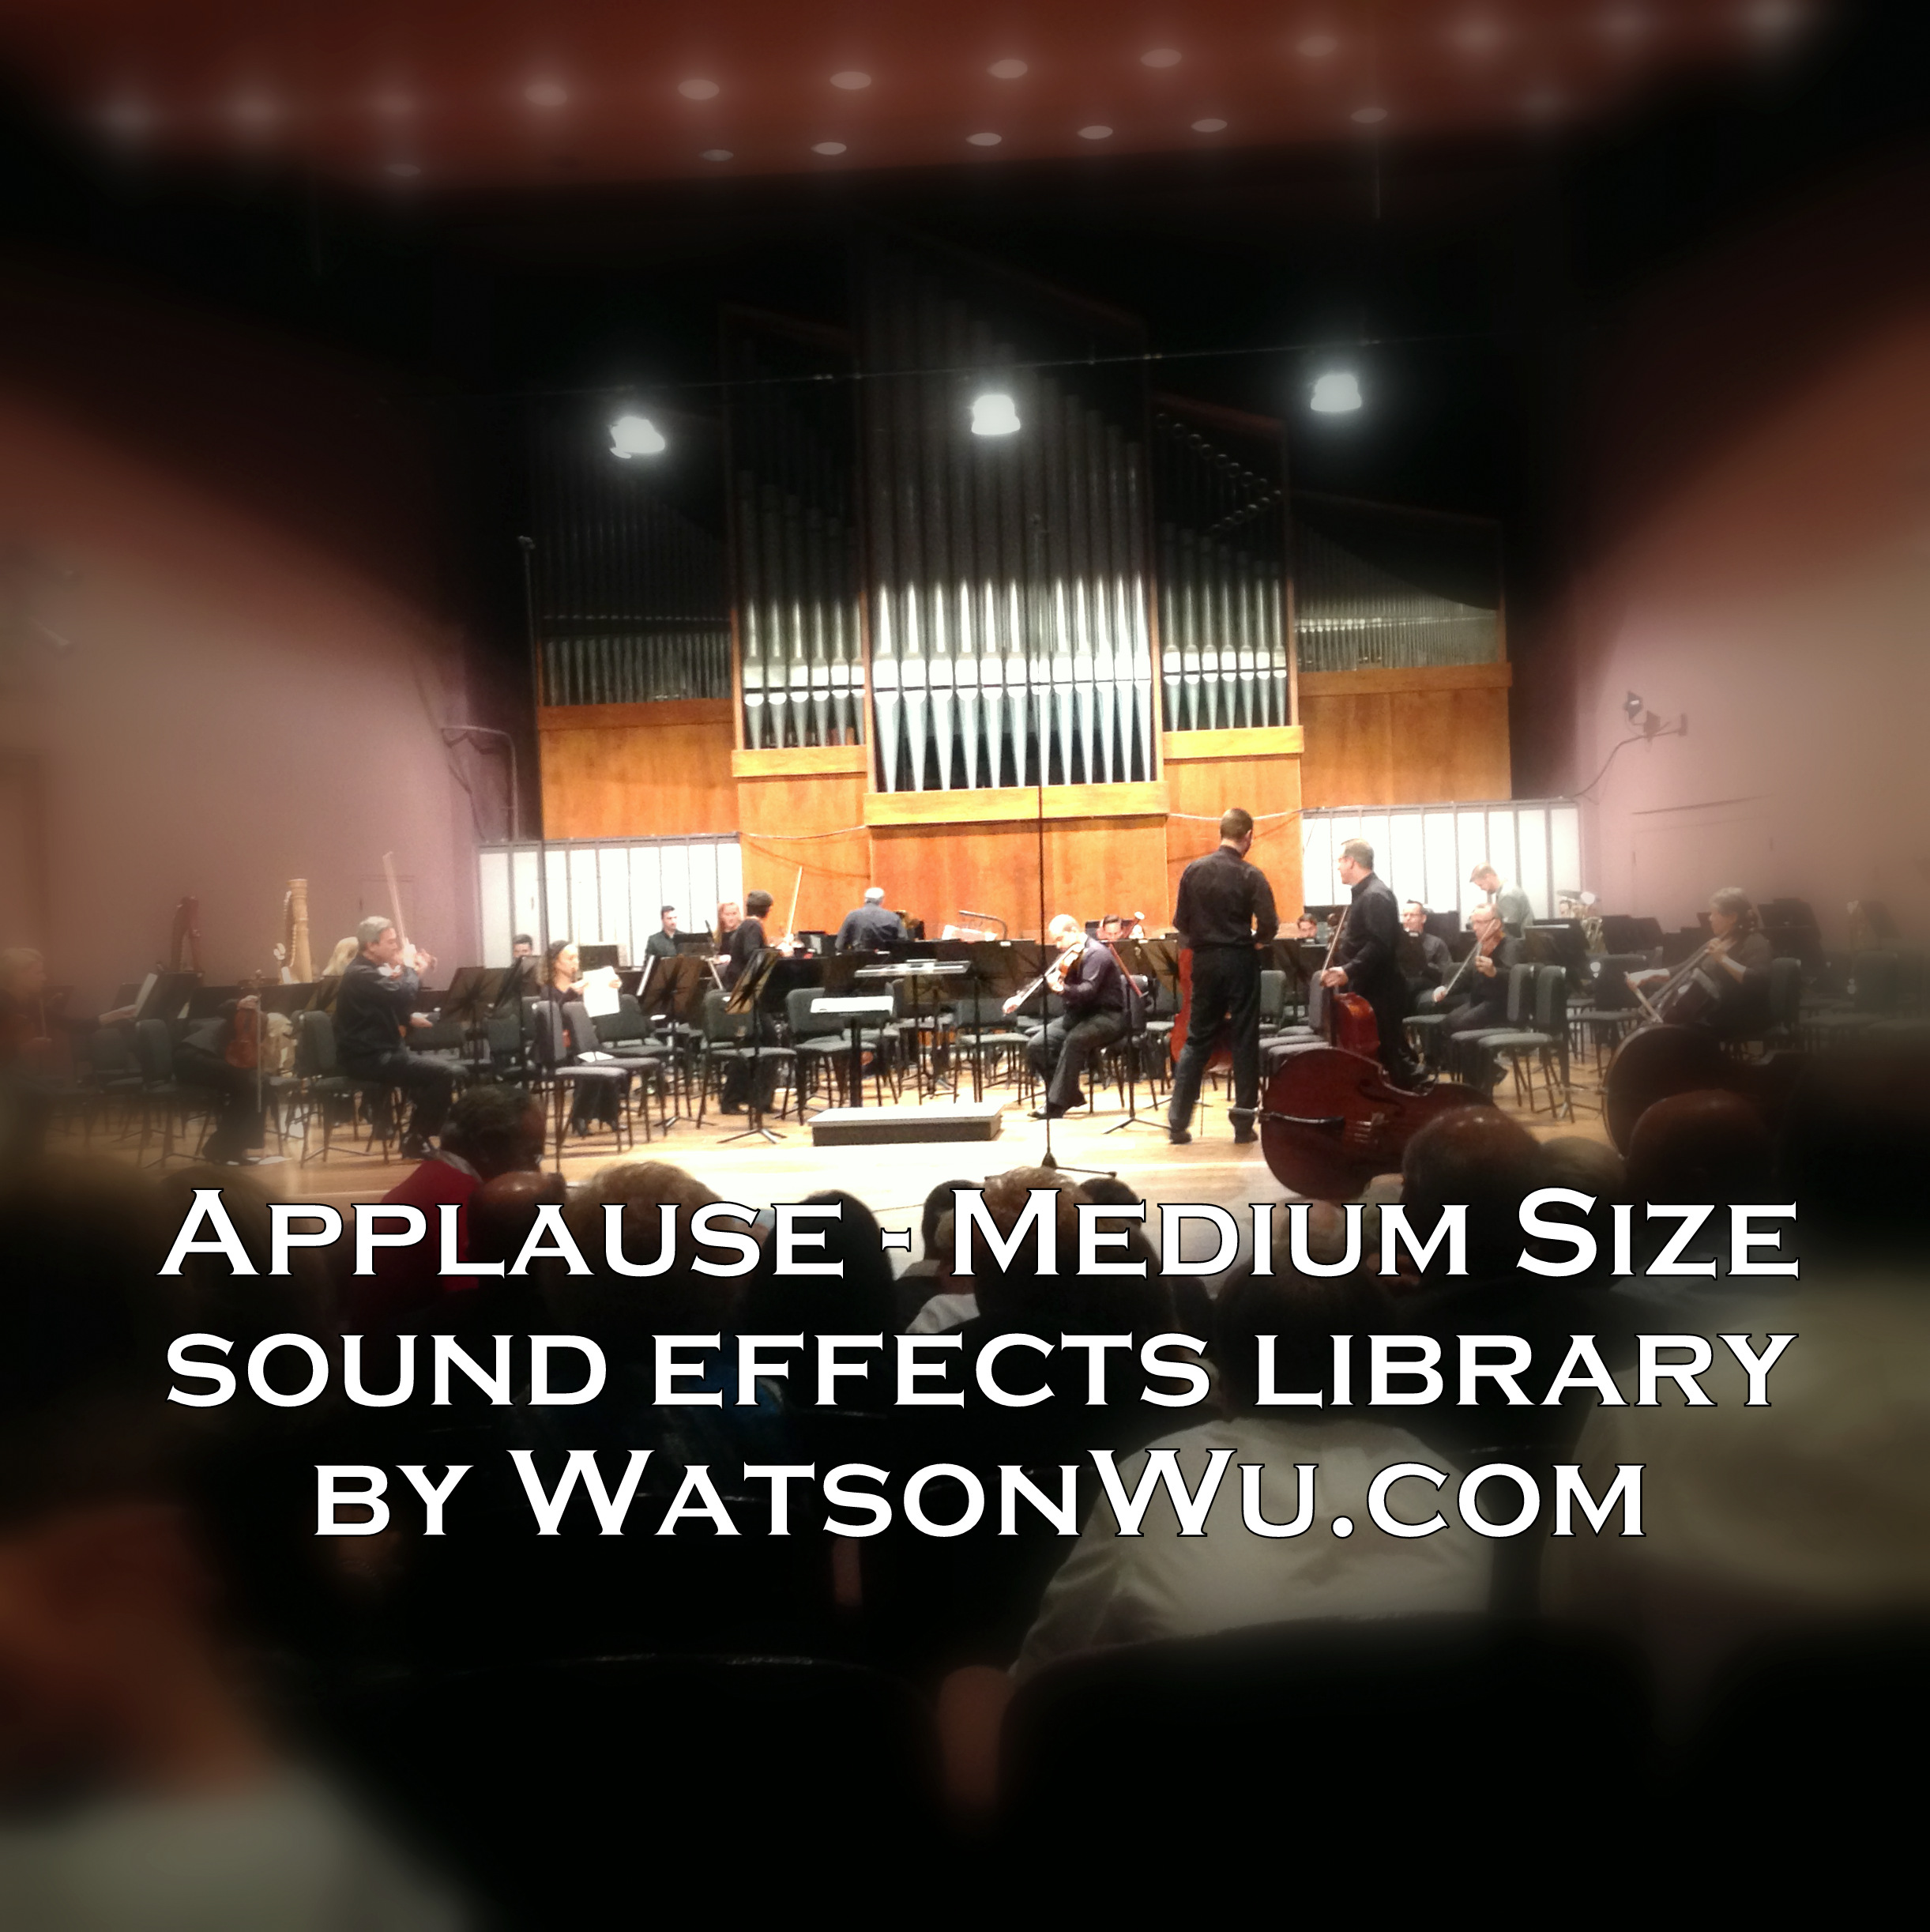 Applause - medium size crowds sound effects library